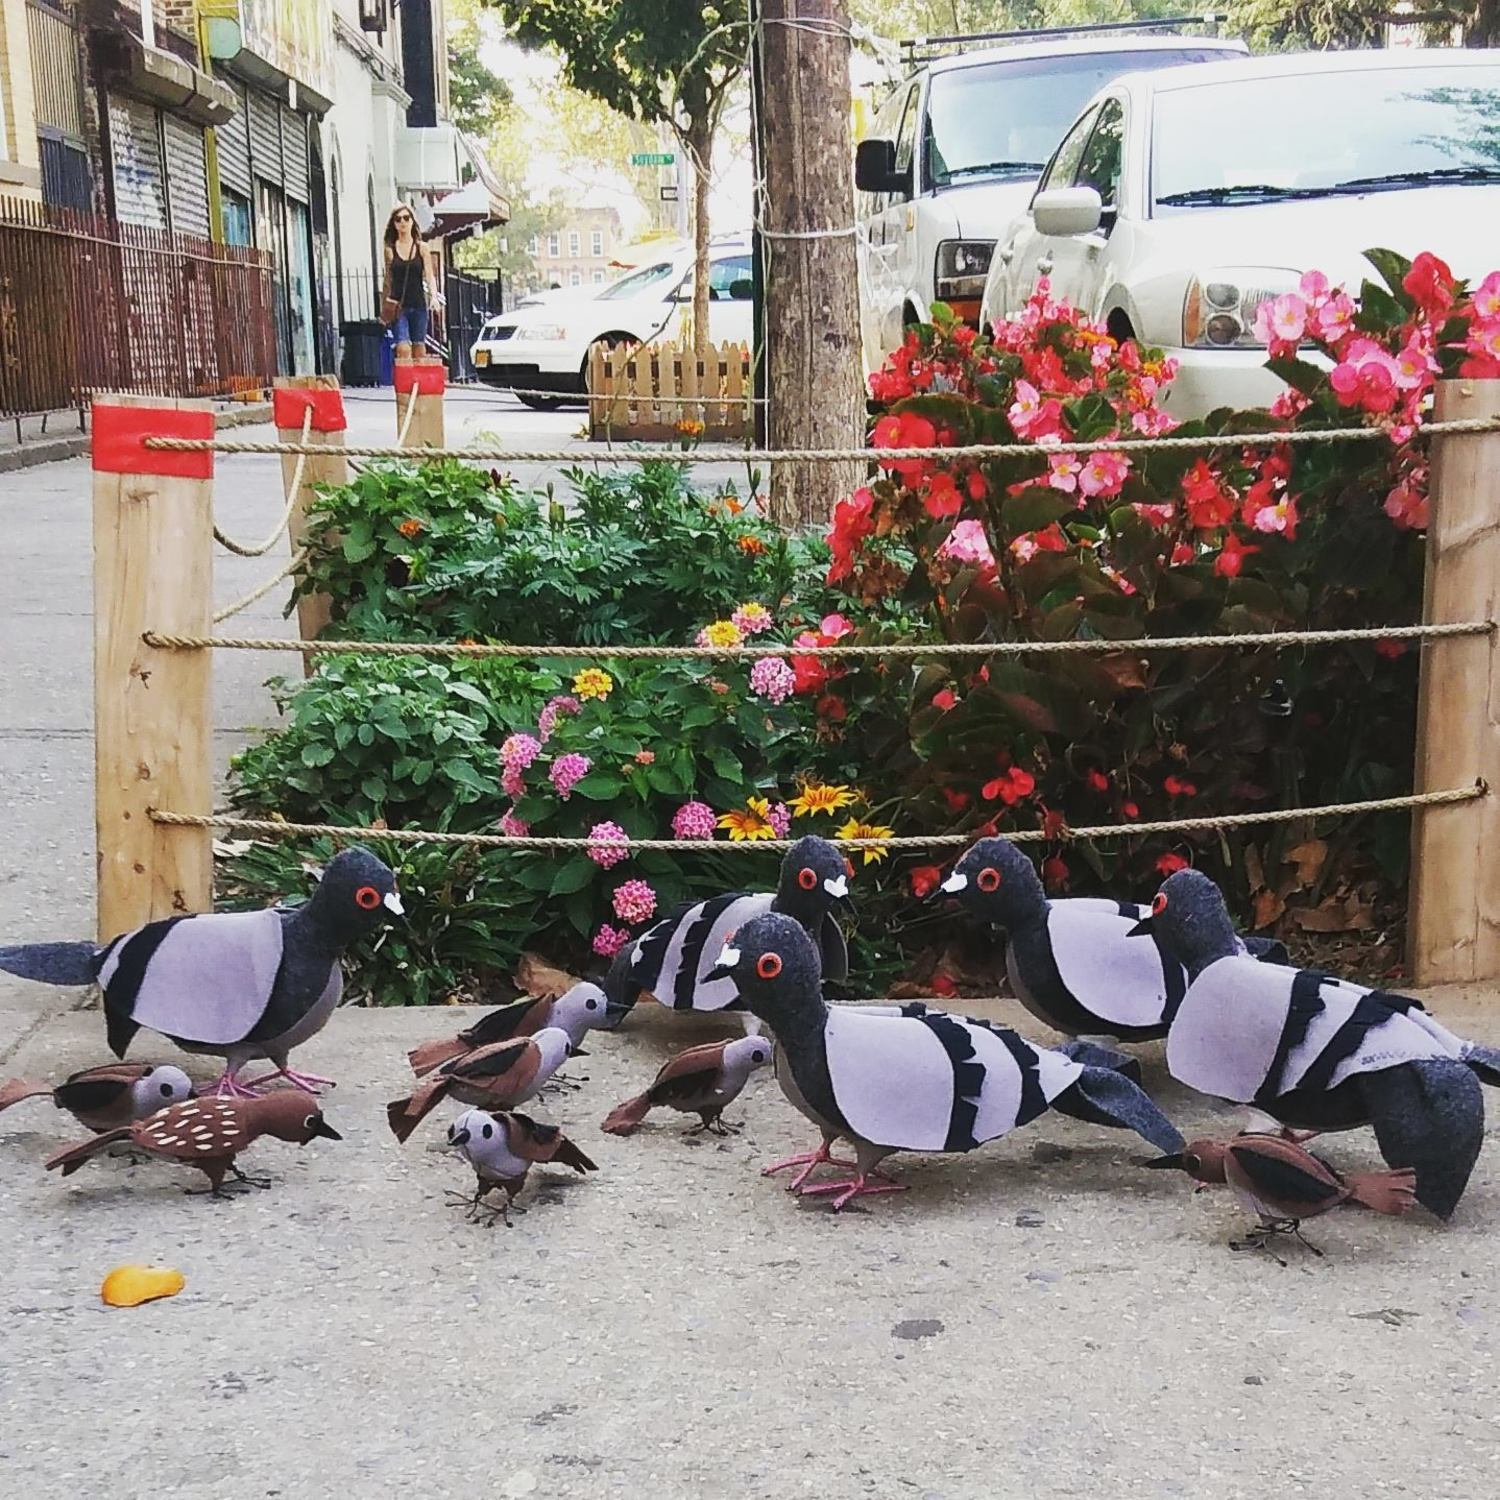 New birds to add to my flock! We will be in union square tomorrow Friday.